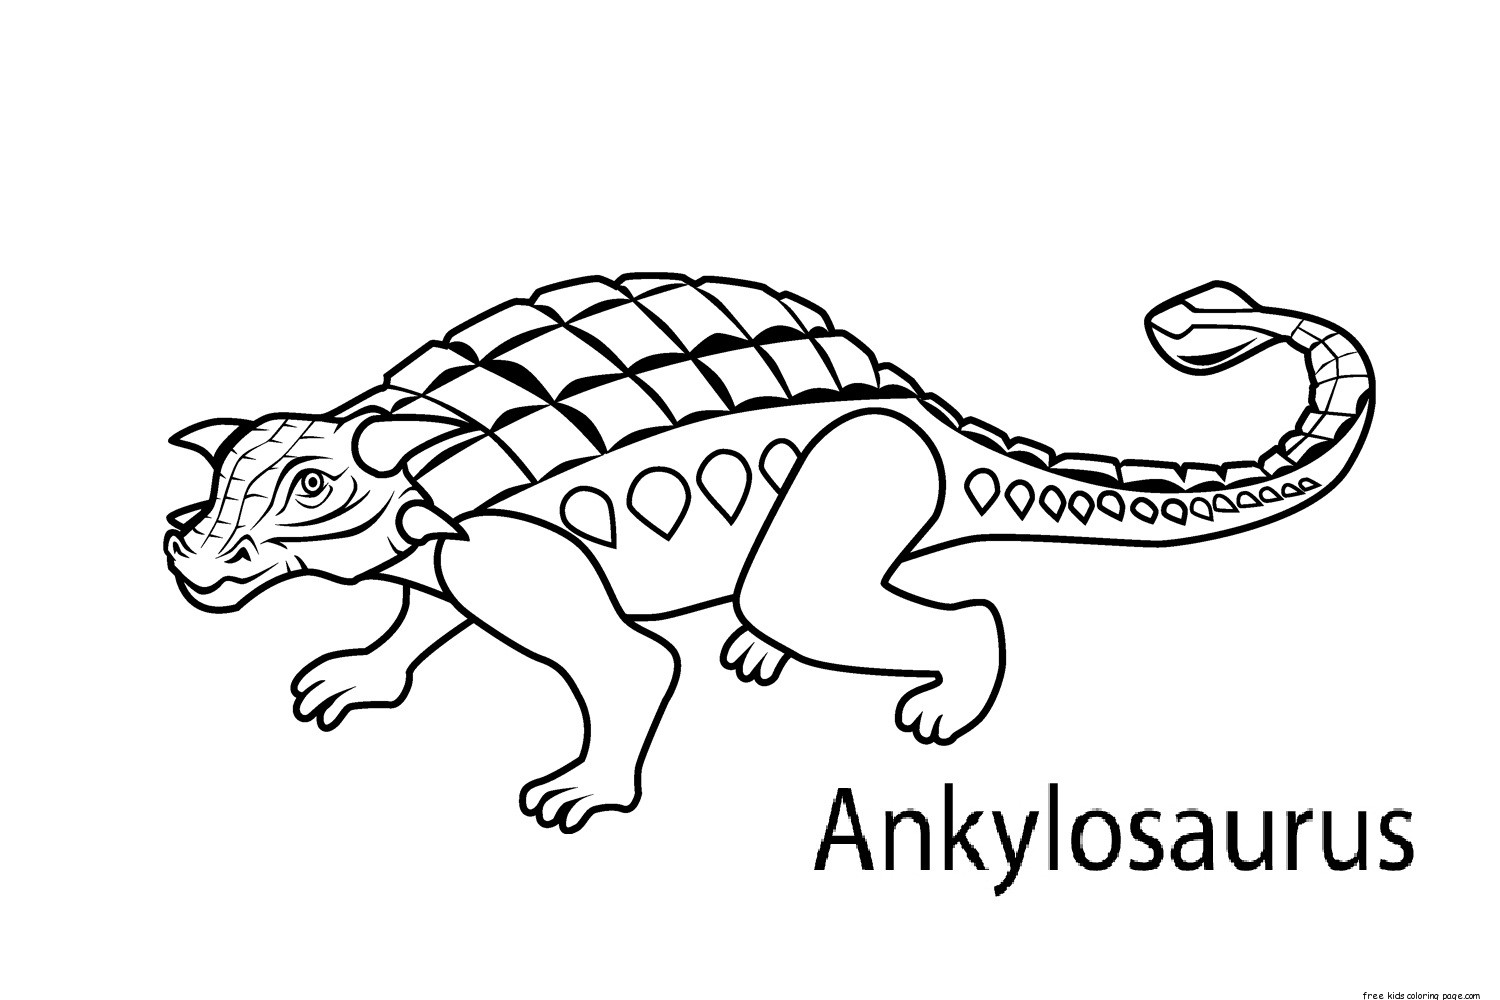 ankylosaurus coloring pages - photo#24